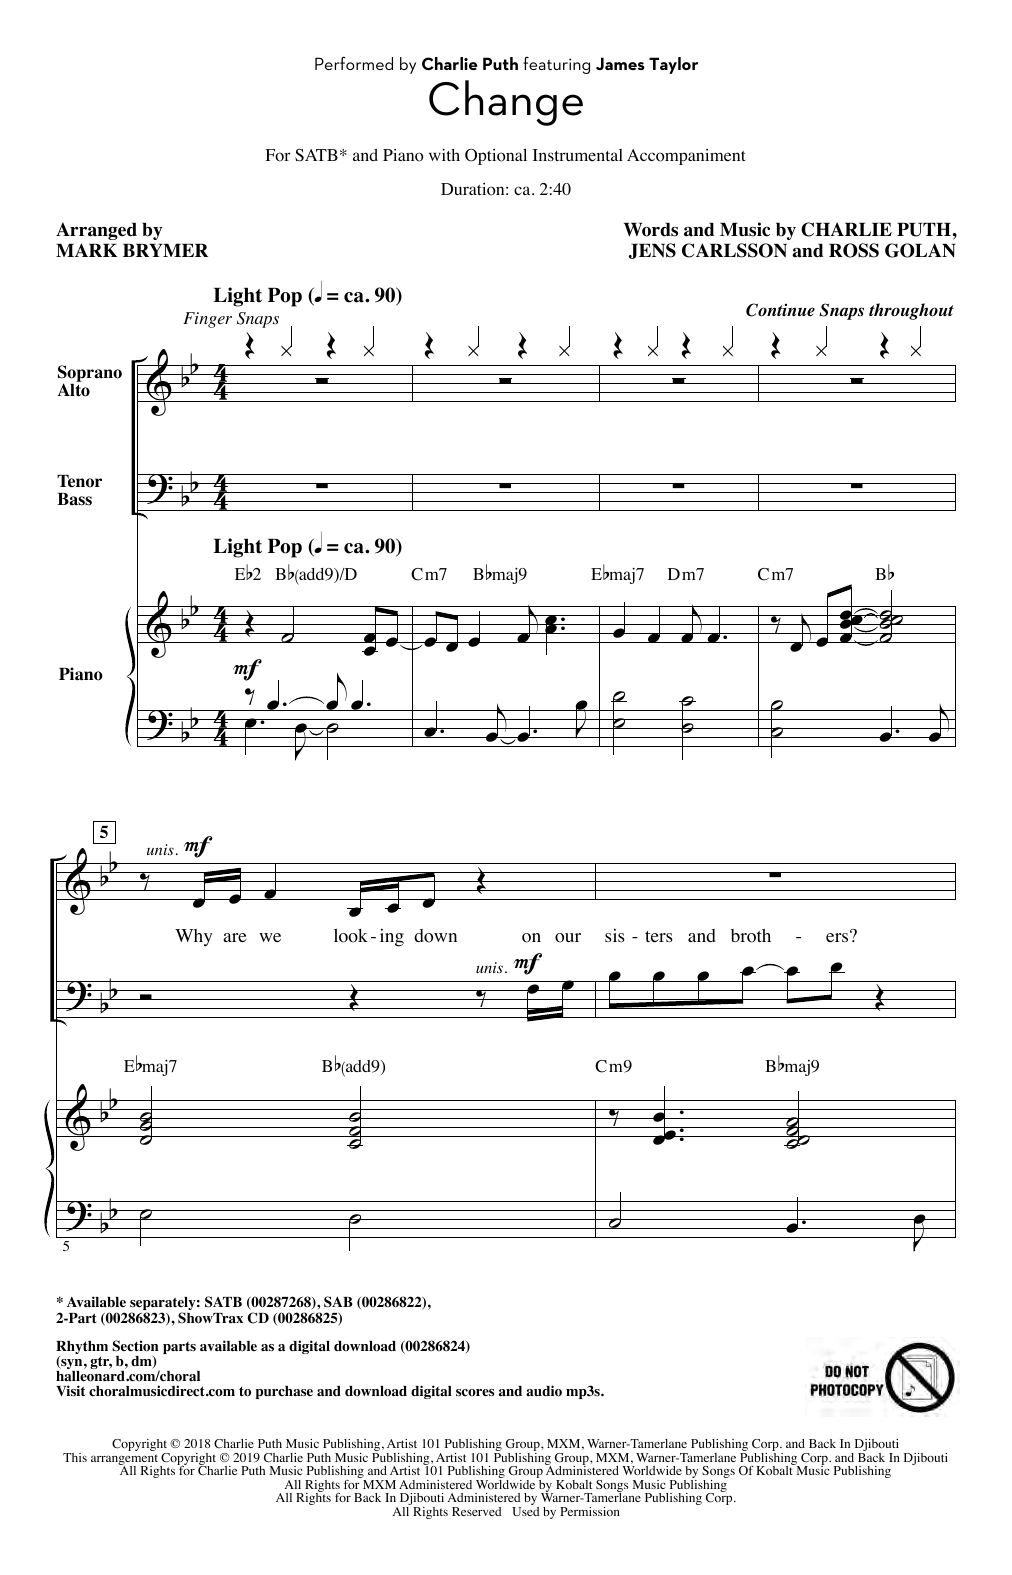 Charlie Puth Change (feat. James Taylor) (arr. Mark Brymer) sheet music notes and chords